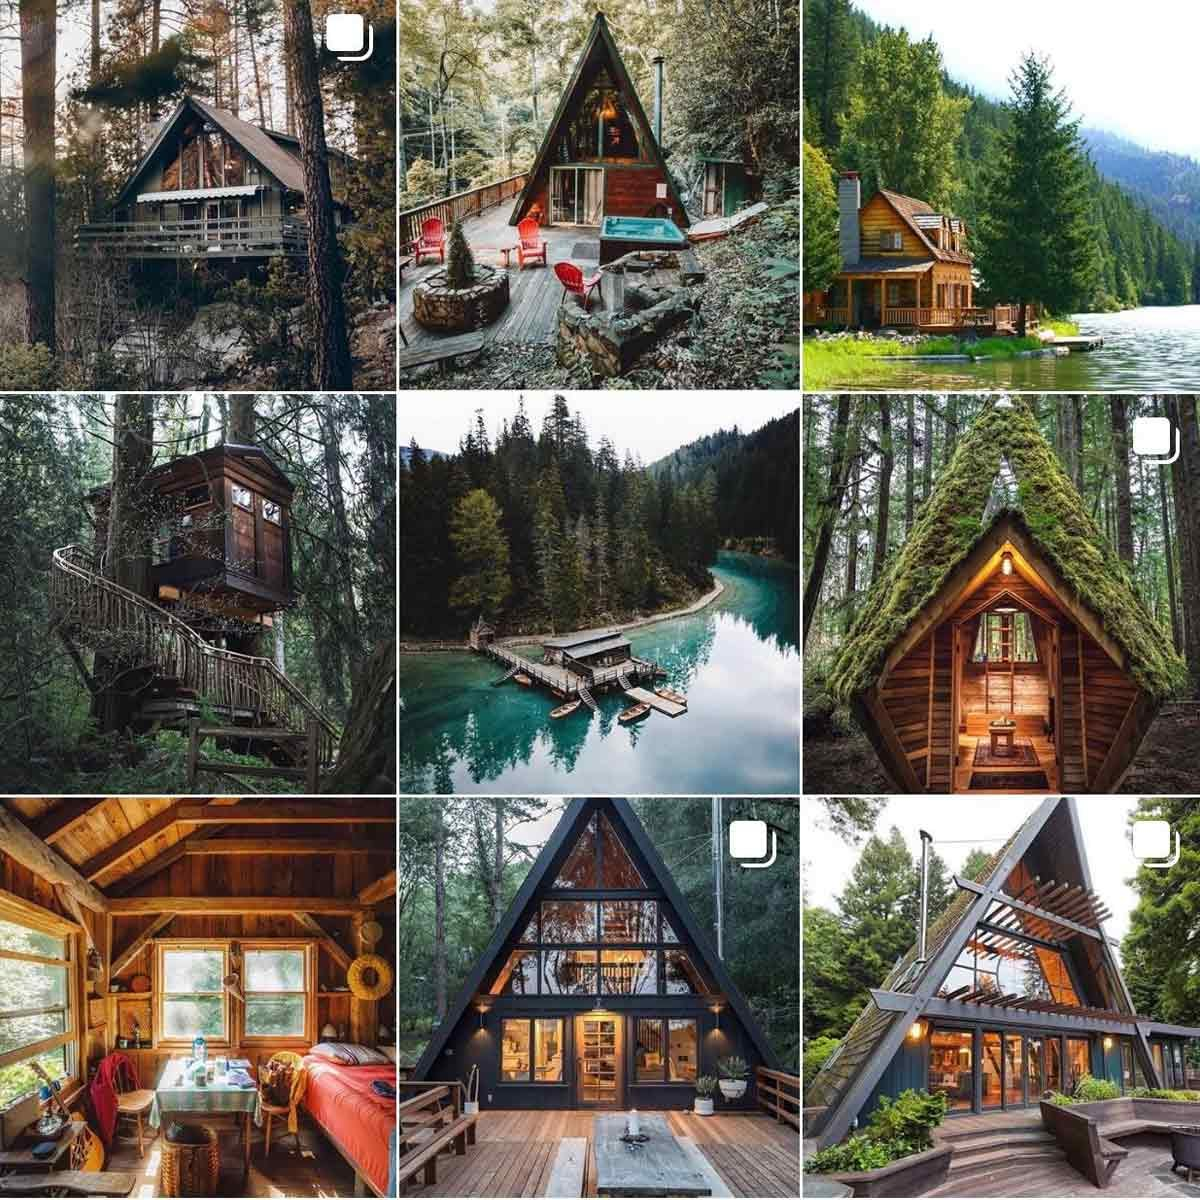 a spread of photos featuring cabins in the woods and their cozy interiors